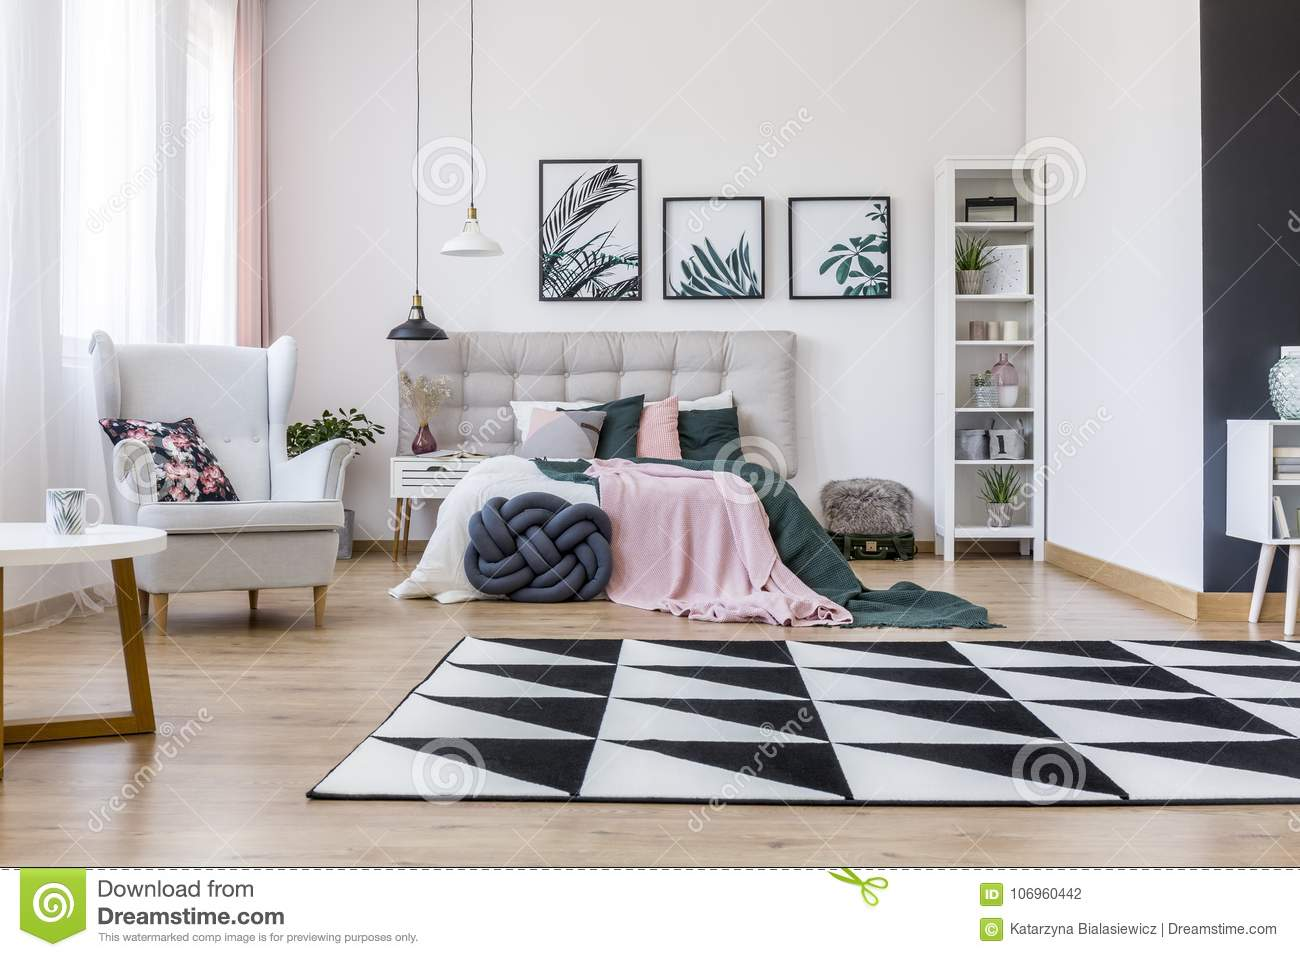 Floral Pillow On Beige Armchair Near Bed With Pink And Green Bedsheets In  Bedroom Interior With Geometric Carpet